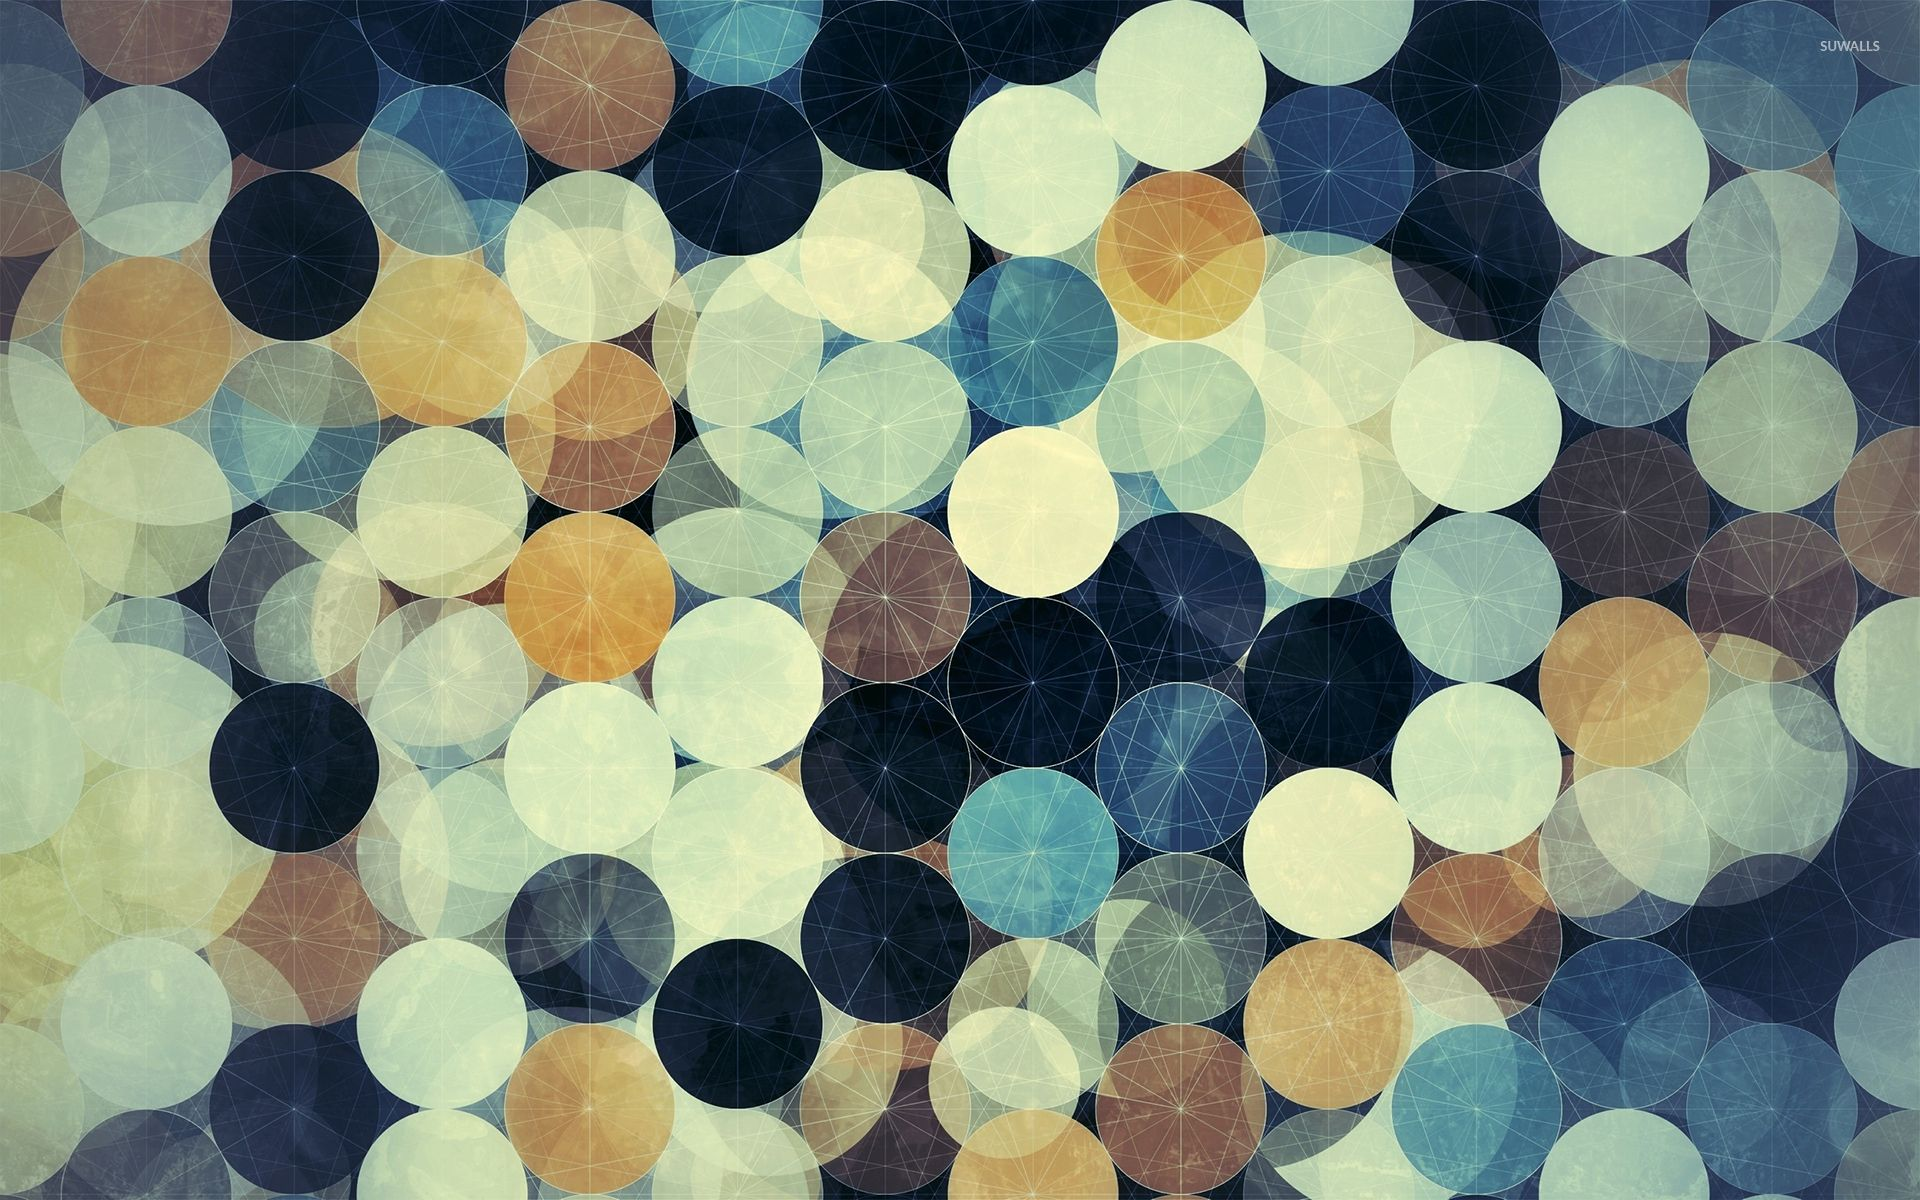 White lines on the circles wallpaper - Abstract wallpapers - #53055